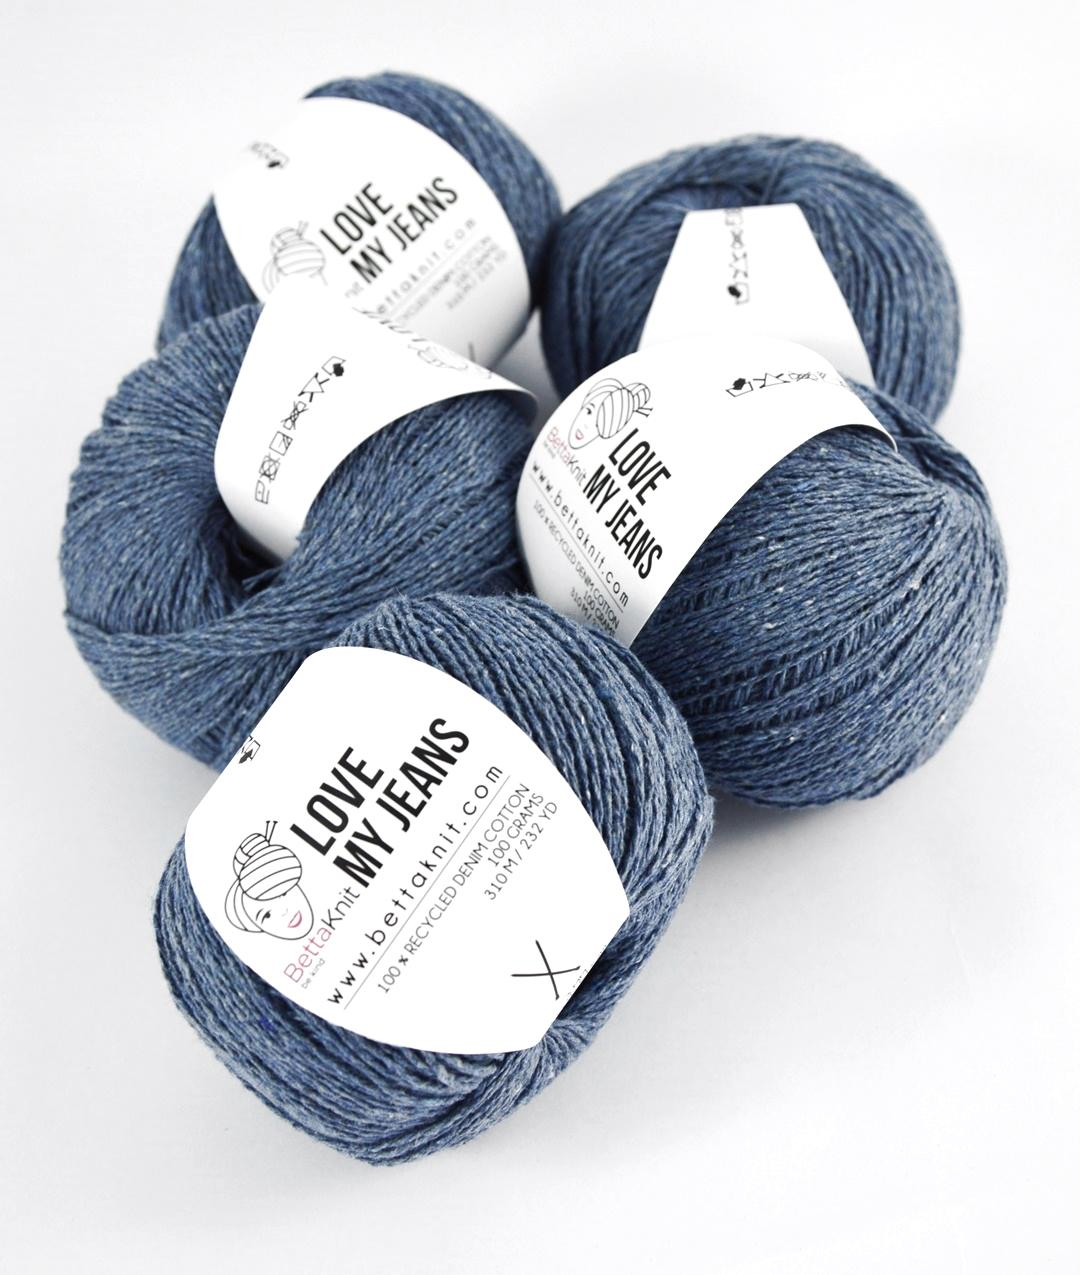 Yarn boxes without Needles  - Pack of Yarn - Love My Jeans Pack - 5 balls - 1